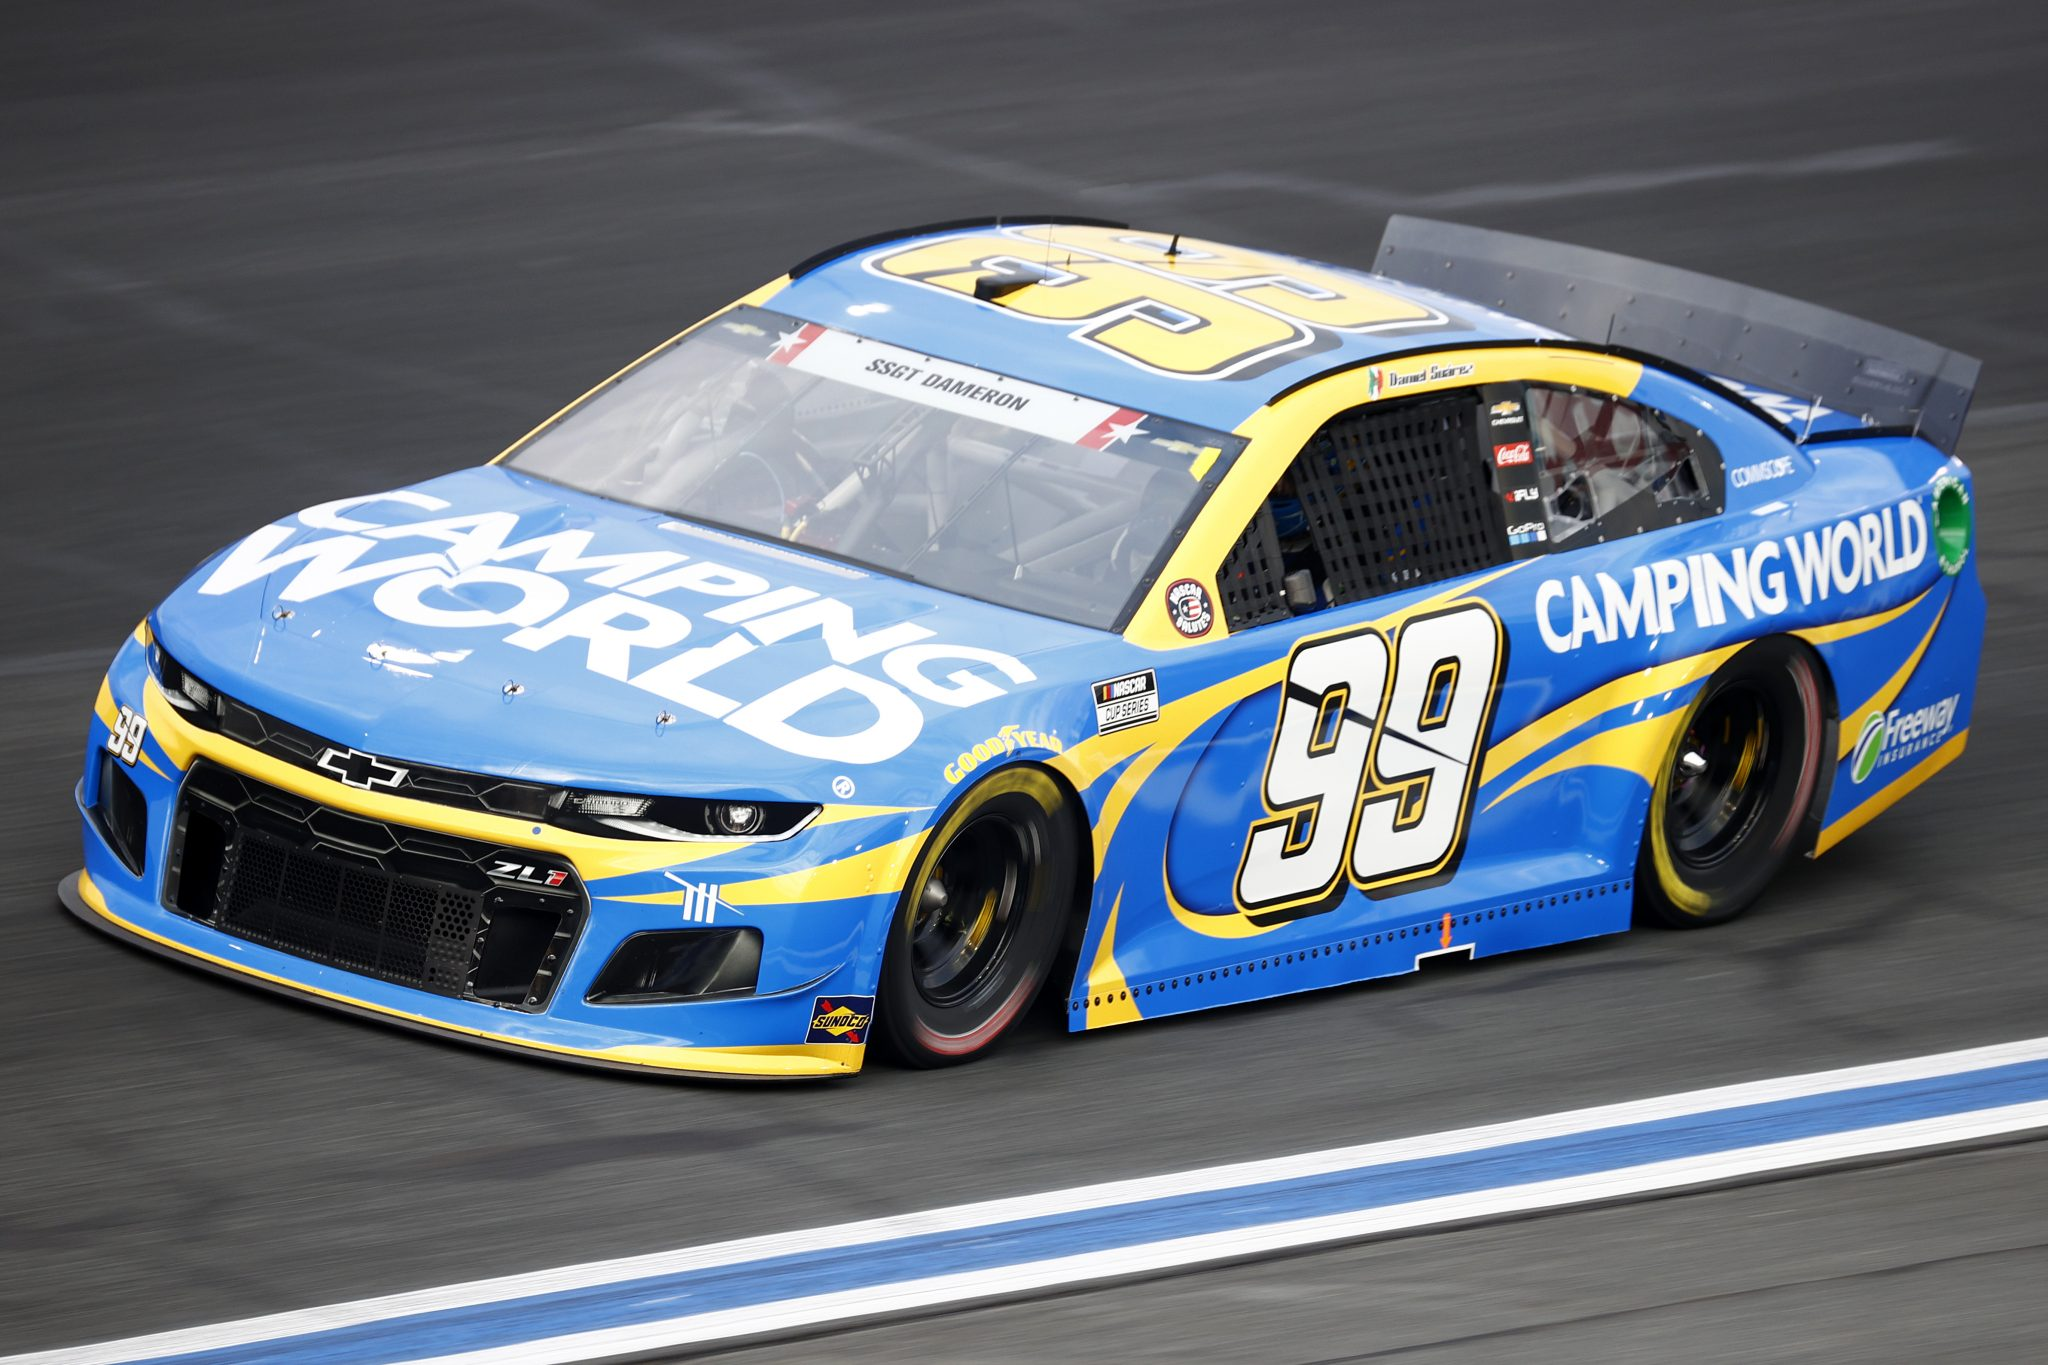 CONCORD, NORTH CAROLINA - MAY 28: Daniel Suarez, driver of the #99 Camping World Chevrolet, drives during practice for the NASCAR Cup Series Coca-Cola 600 at Charlotte Motor Speedway on May 28, 2021 in Concord, North Carolina. (Photo by Jared C. Tilton/Getty Images) | Getty Images